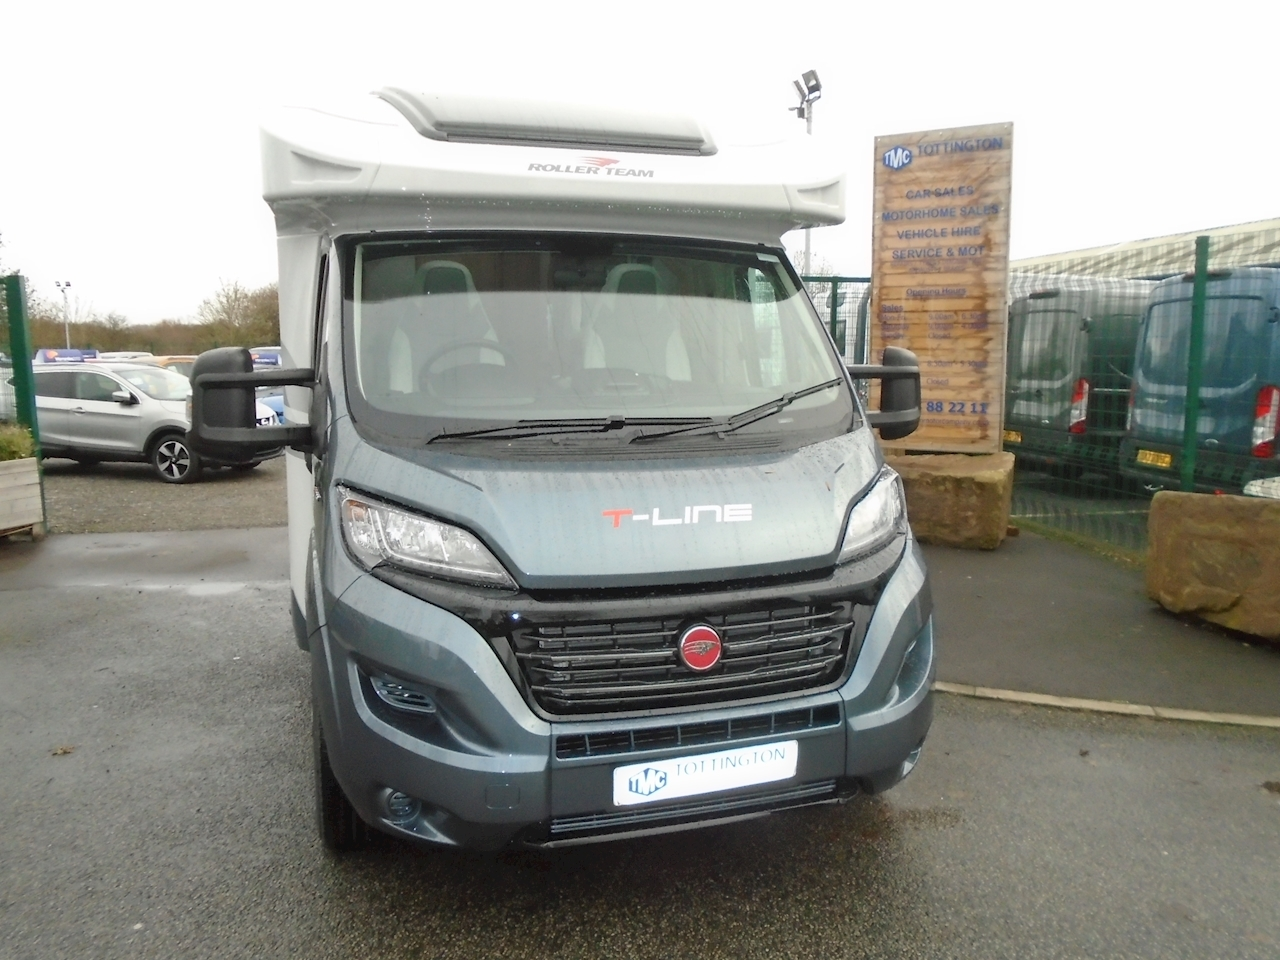 Rollerteam T-Line 590  (New 2021 Model) 2300 Motorhome Automatic Diesel